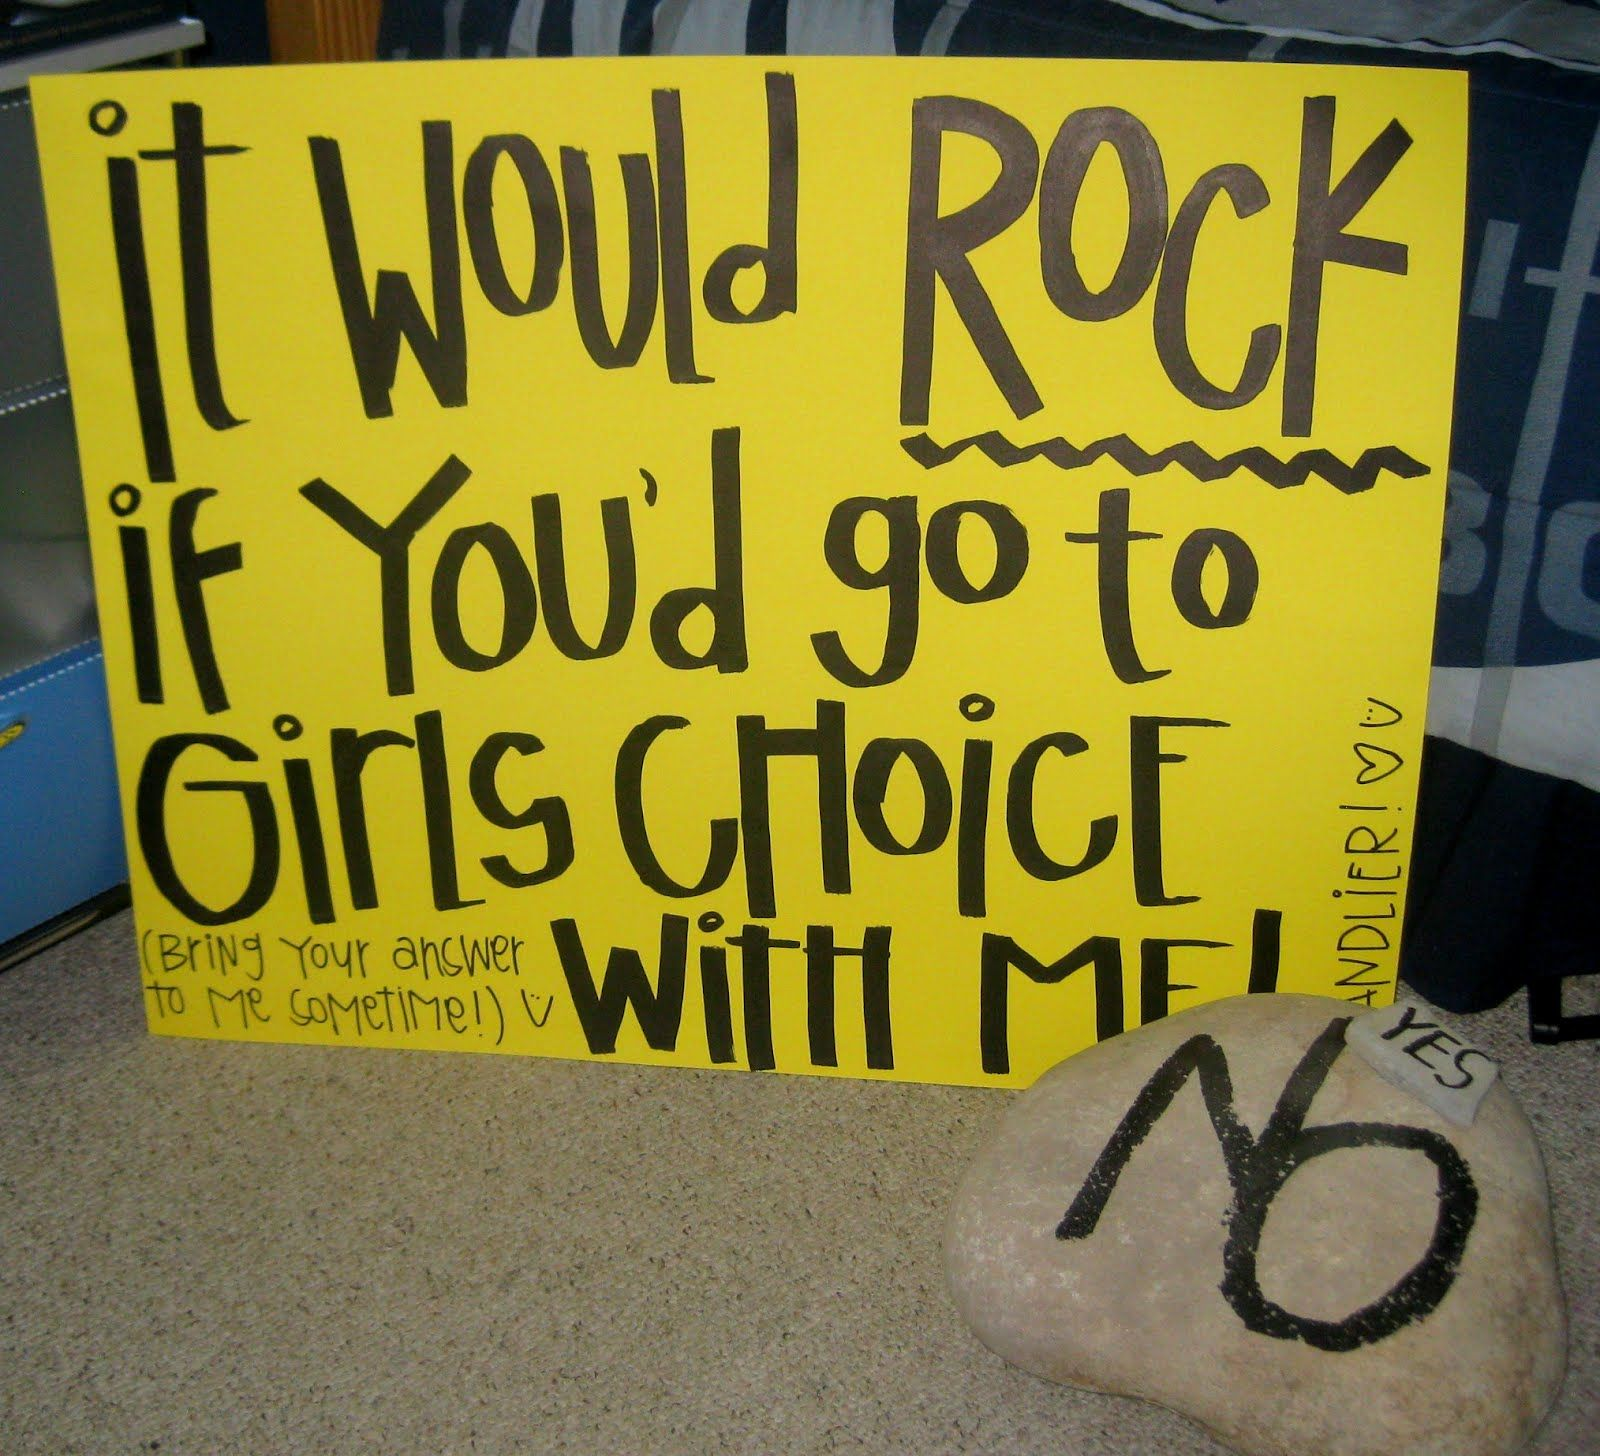 The How Dance Girl Ask To A To